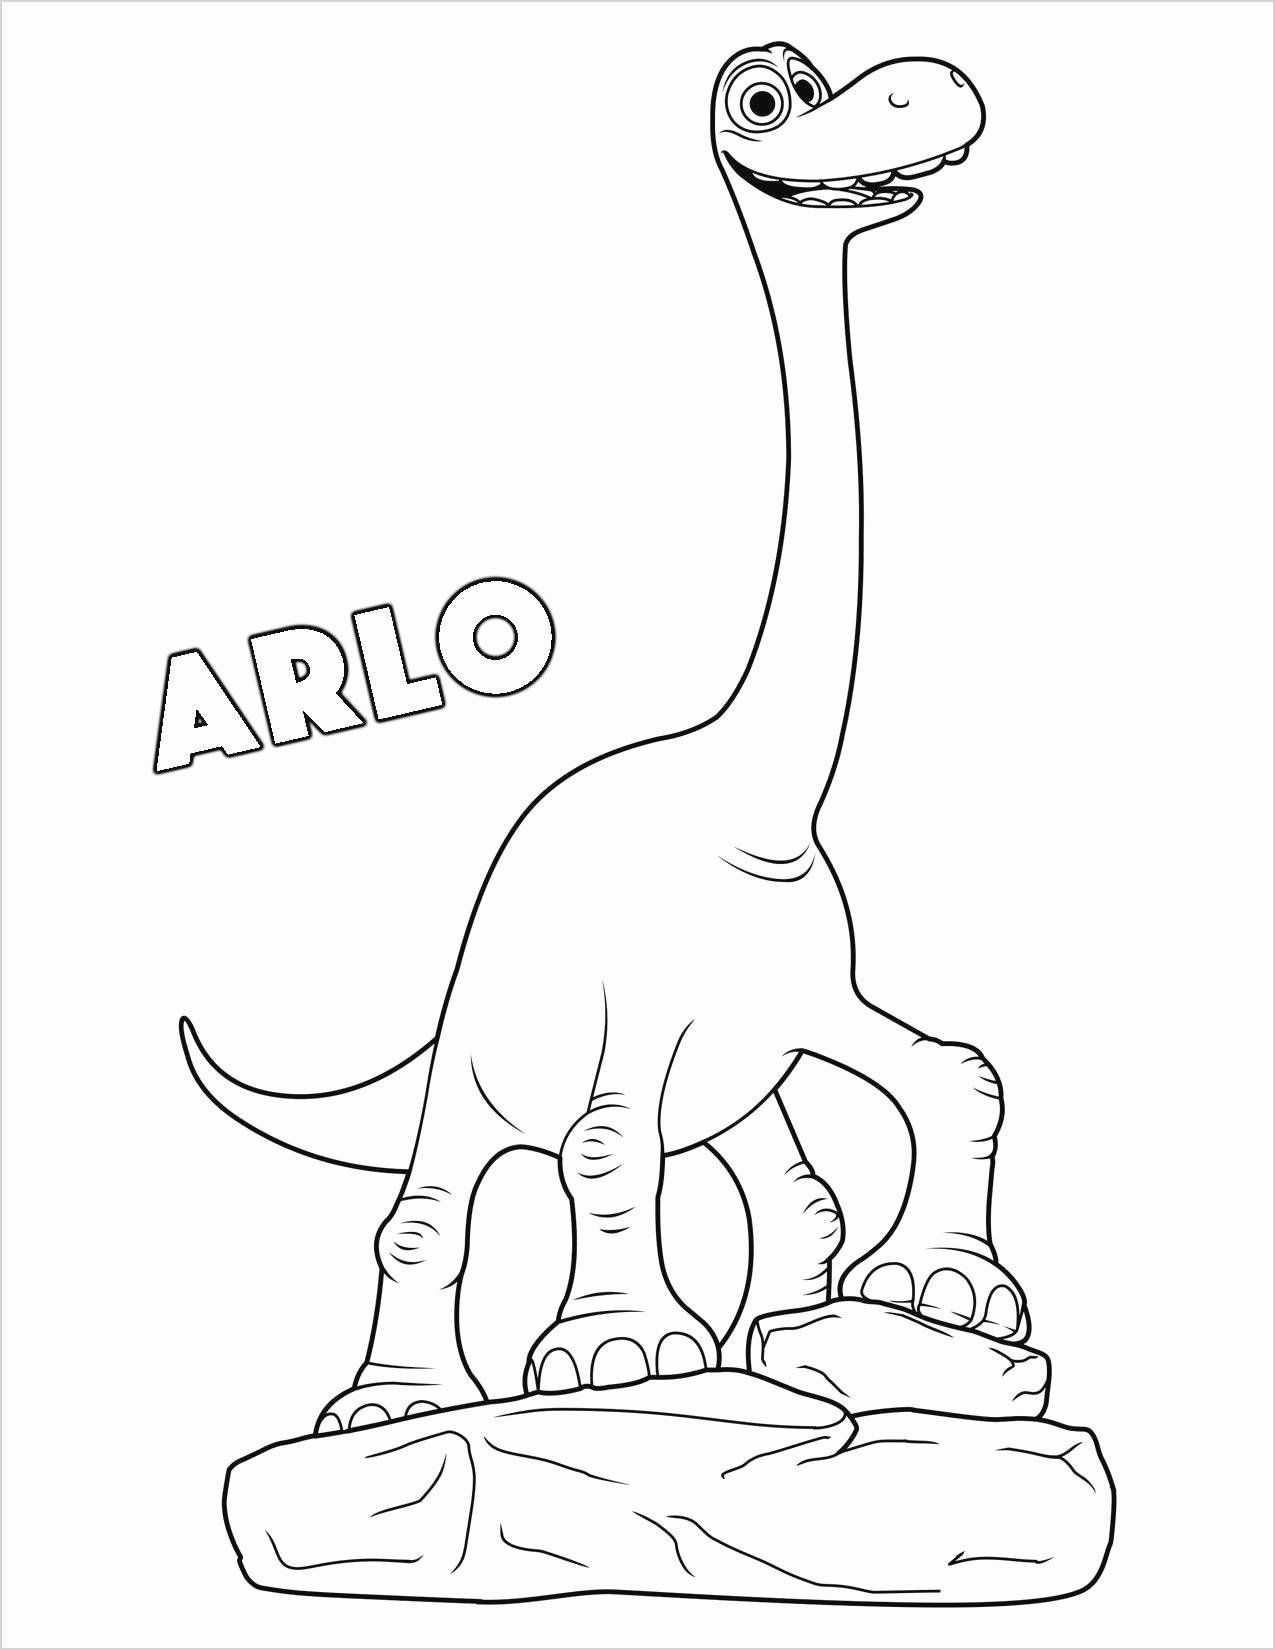 Printable Coloring Pages For Easter Inspirational Letter E Coloring Pages Gcssi Colori In 2020 Disney Coloring Pages Zoo Animal Coloring Pages Cartoon Coloring Pages